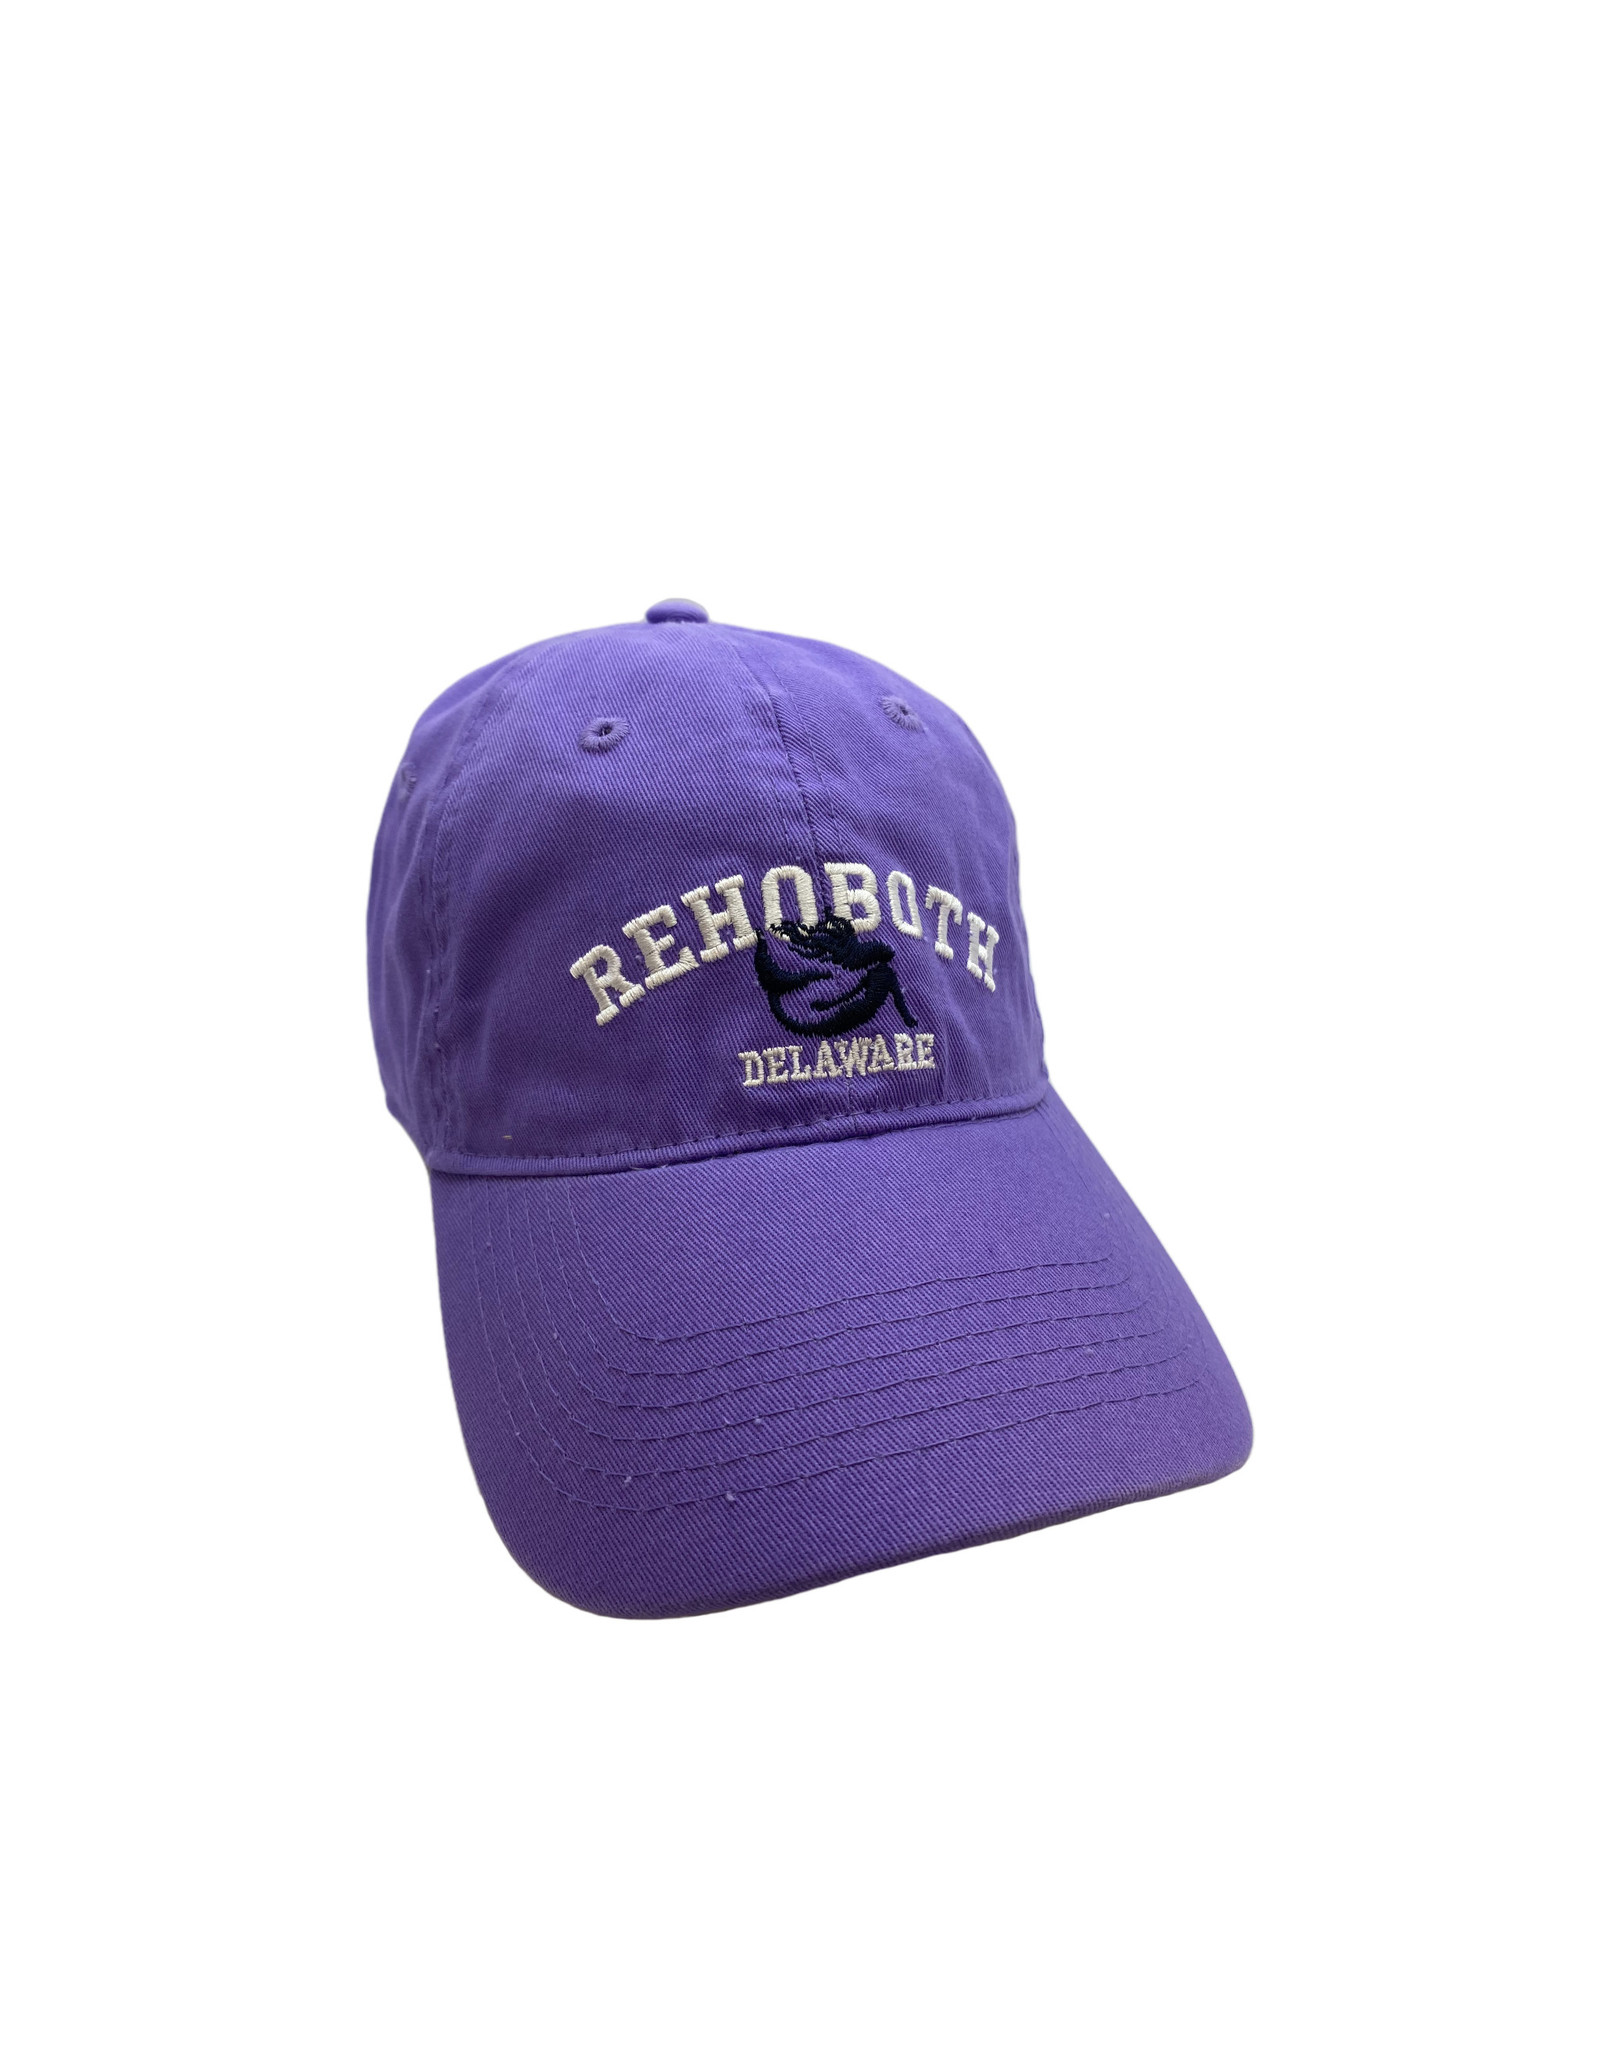 REHOBOTH LIFESTYLE CLASSIC COTTON BEACH HAT ADJUSTABLE OS VIOLET MERMAID